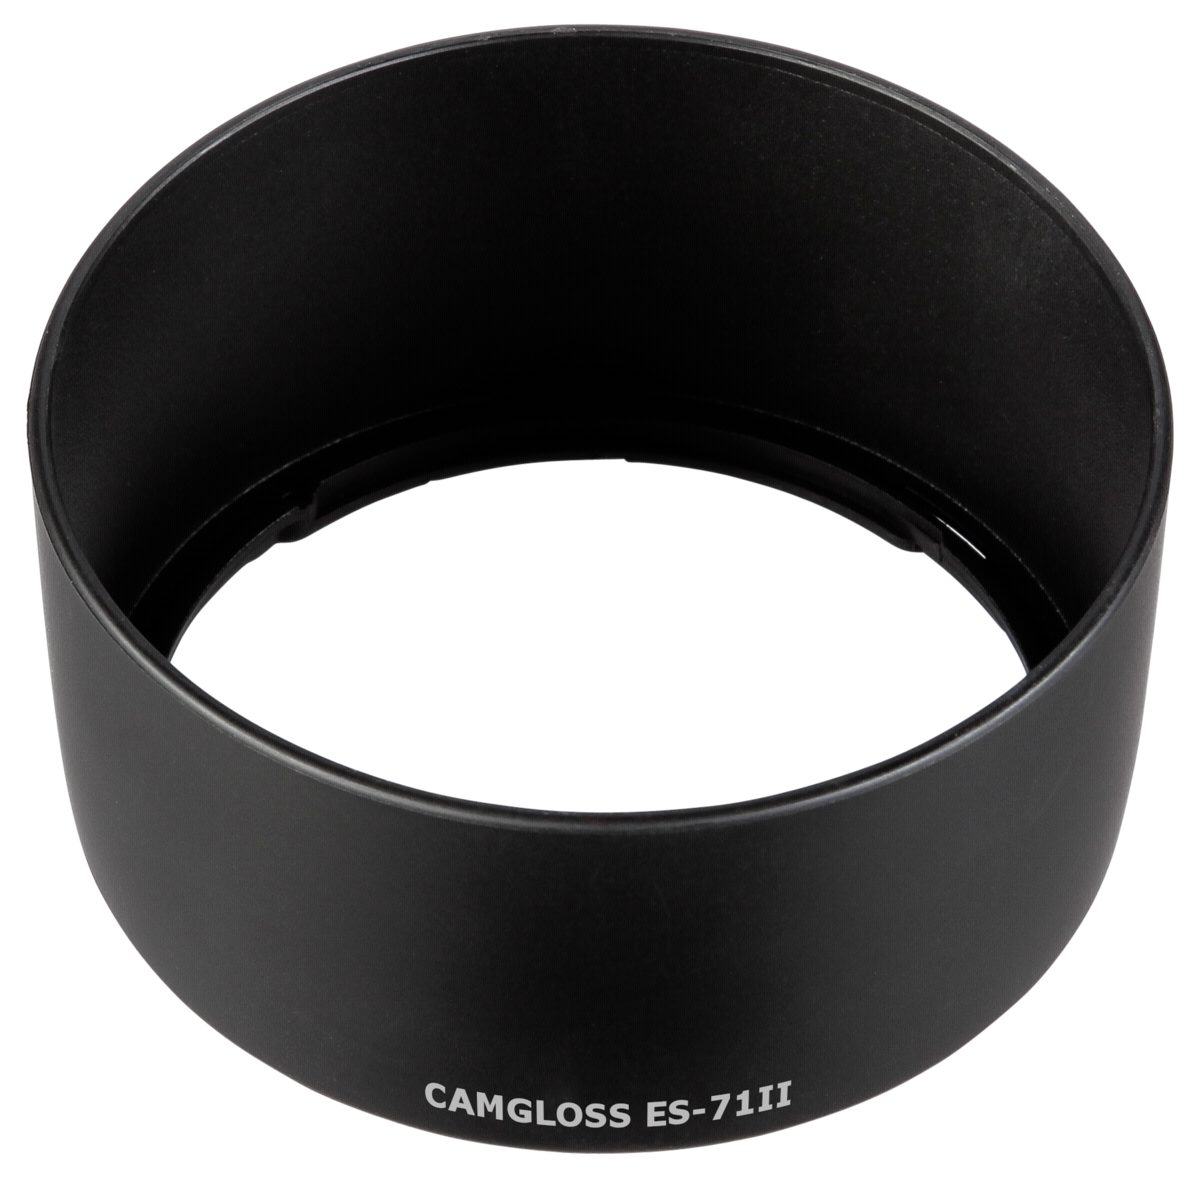 Camgloss Foto Equipment »ES-71 II Blende für Canon«